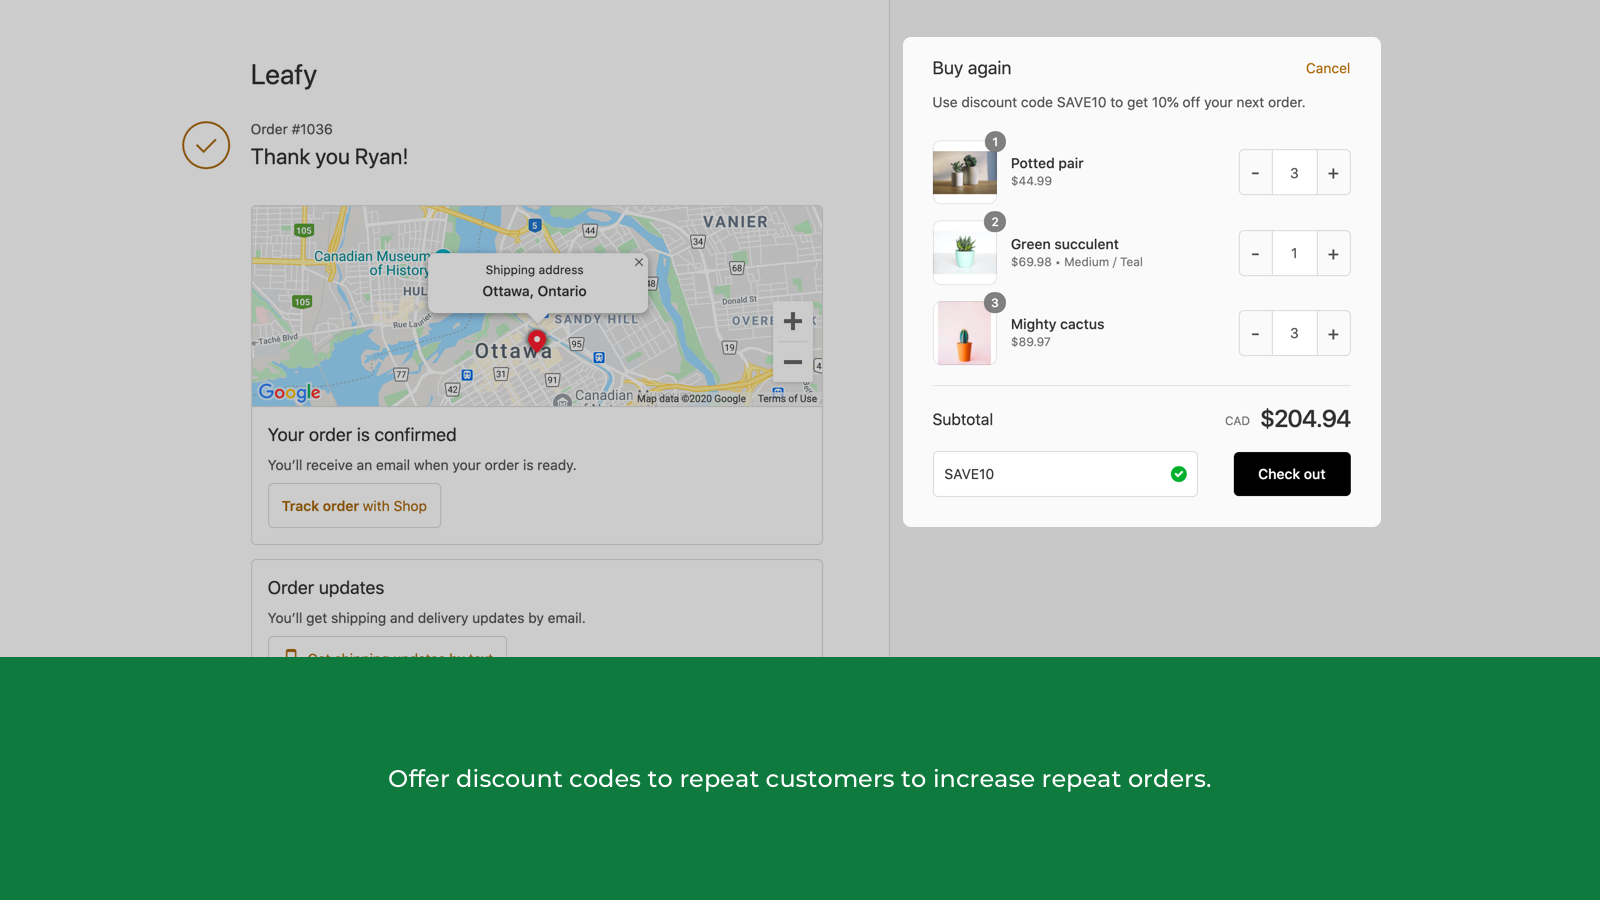 Offer discount codes to repeat customers to increase repeat orde